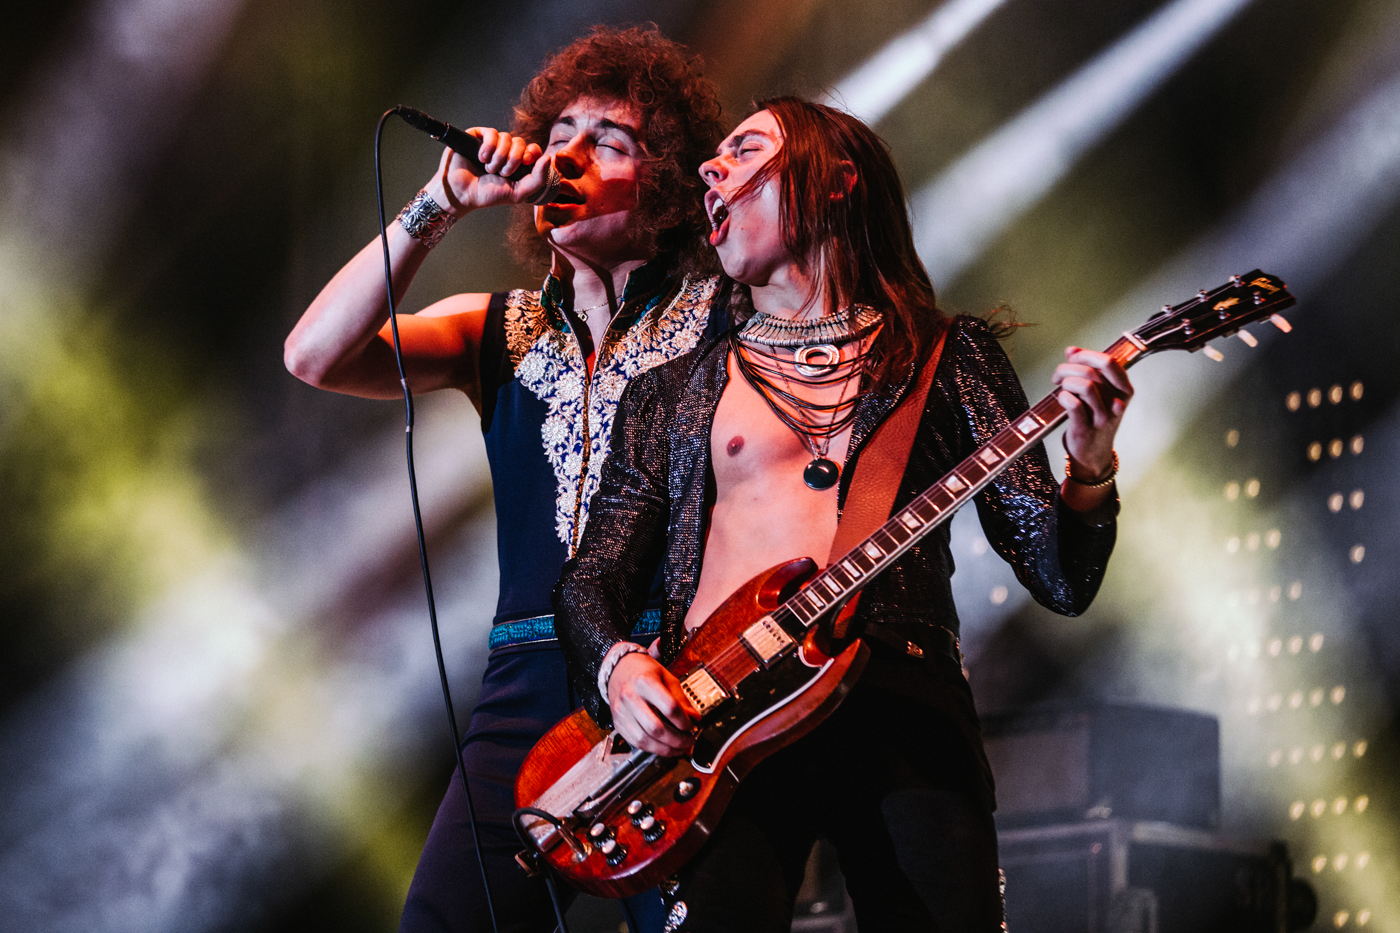 Greta van Fleet. (c) Mitchell Giebels